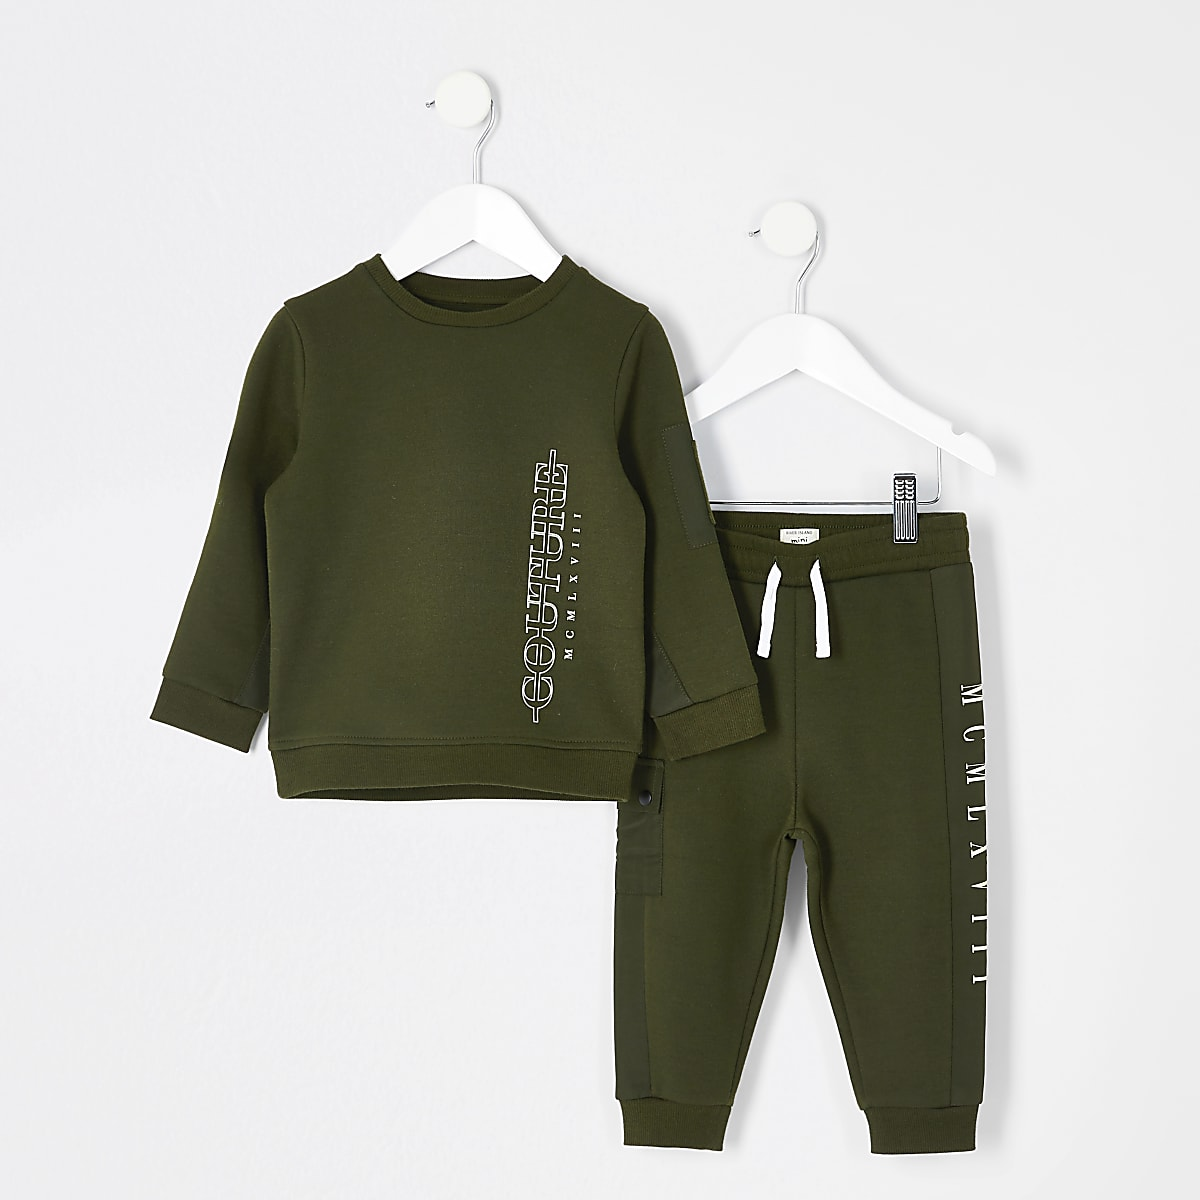 Mini boys khaki couture sweatshirt outfit